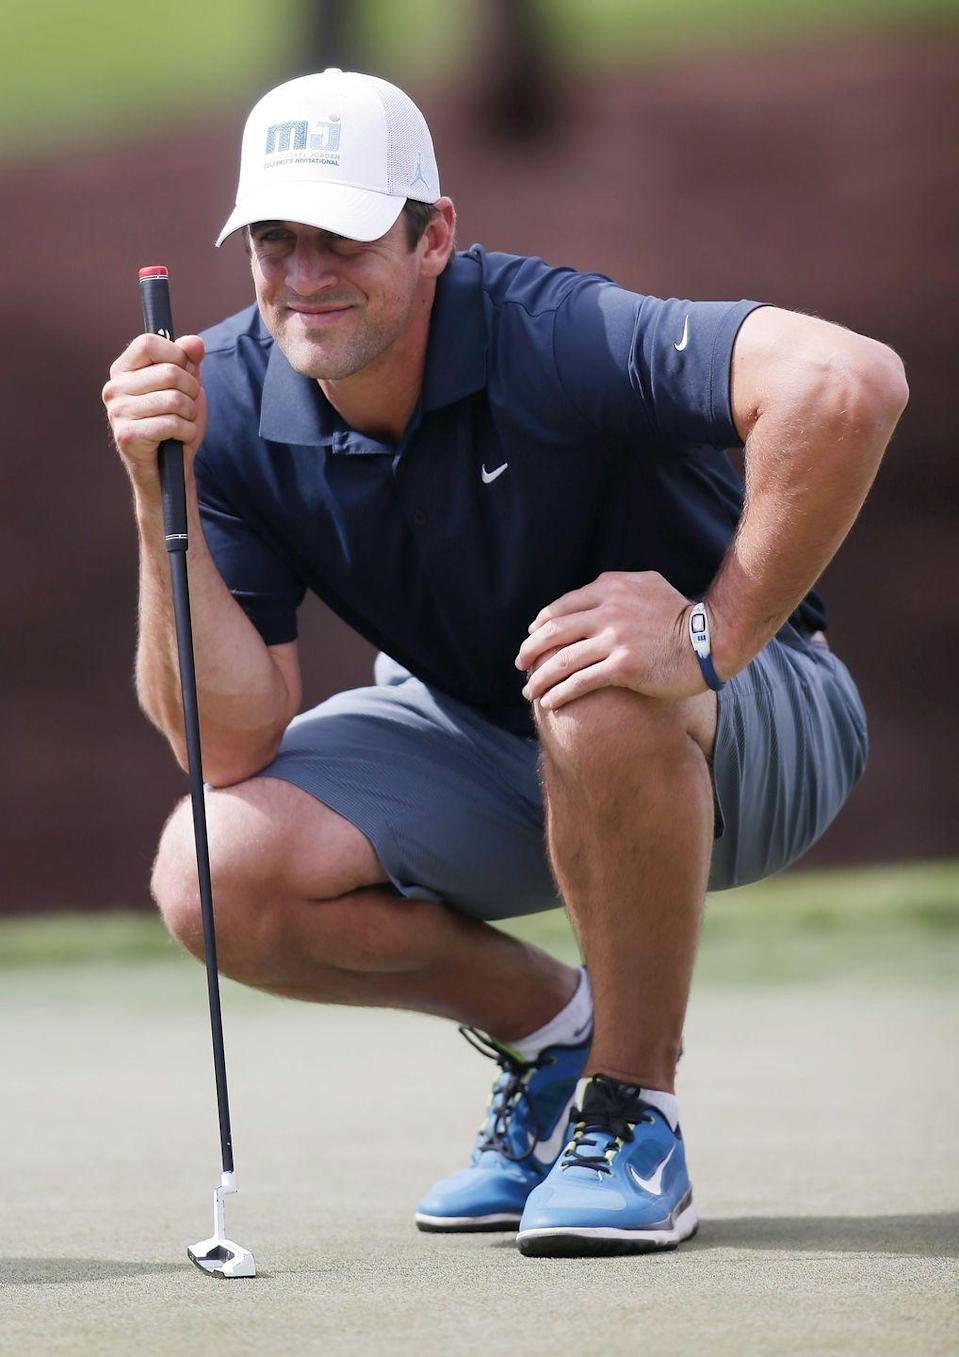 <p>Aaron Rodgers lines up a putt during Aria Resort & Casino's 13th Annual Michael Jordan Celebrity Invitational at Shadow Creek in April 2014.</p>